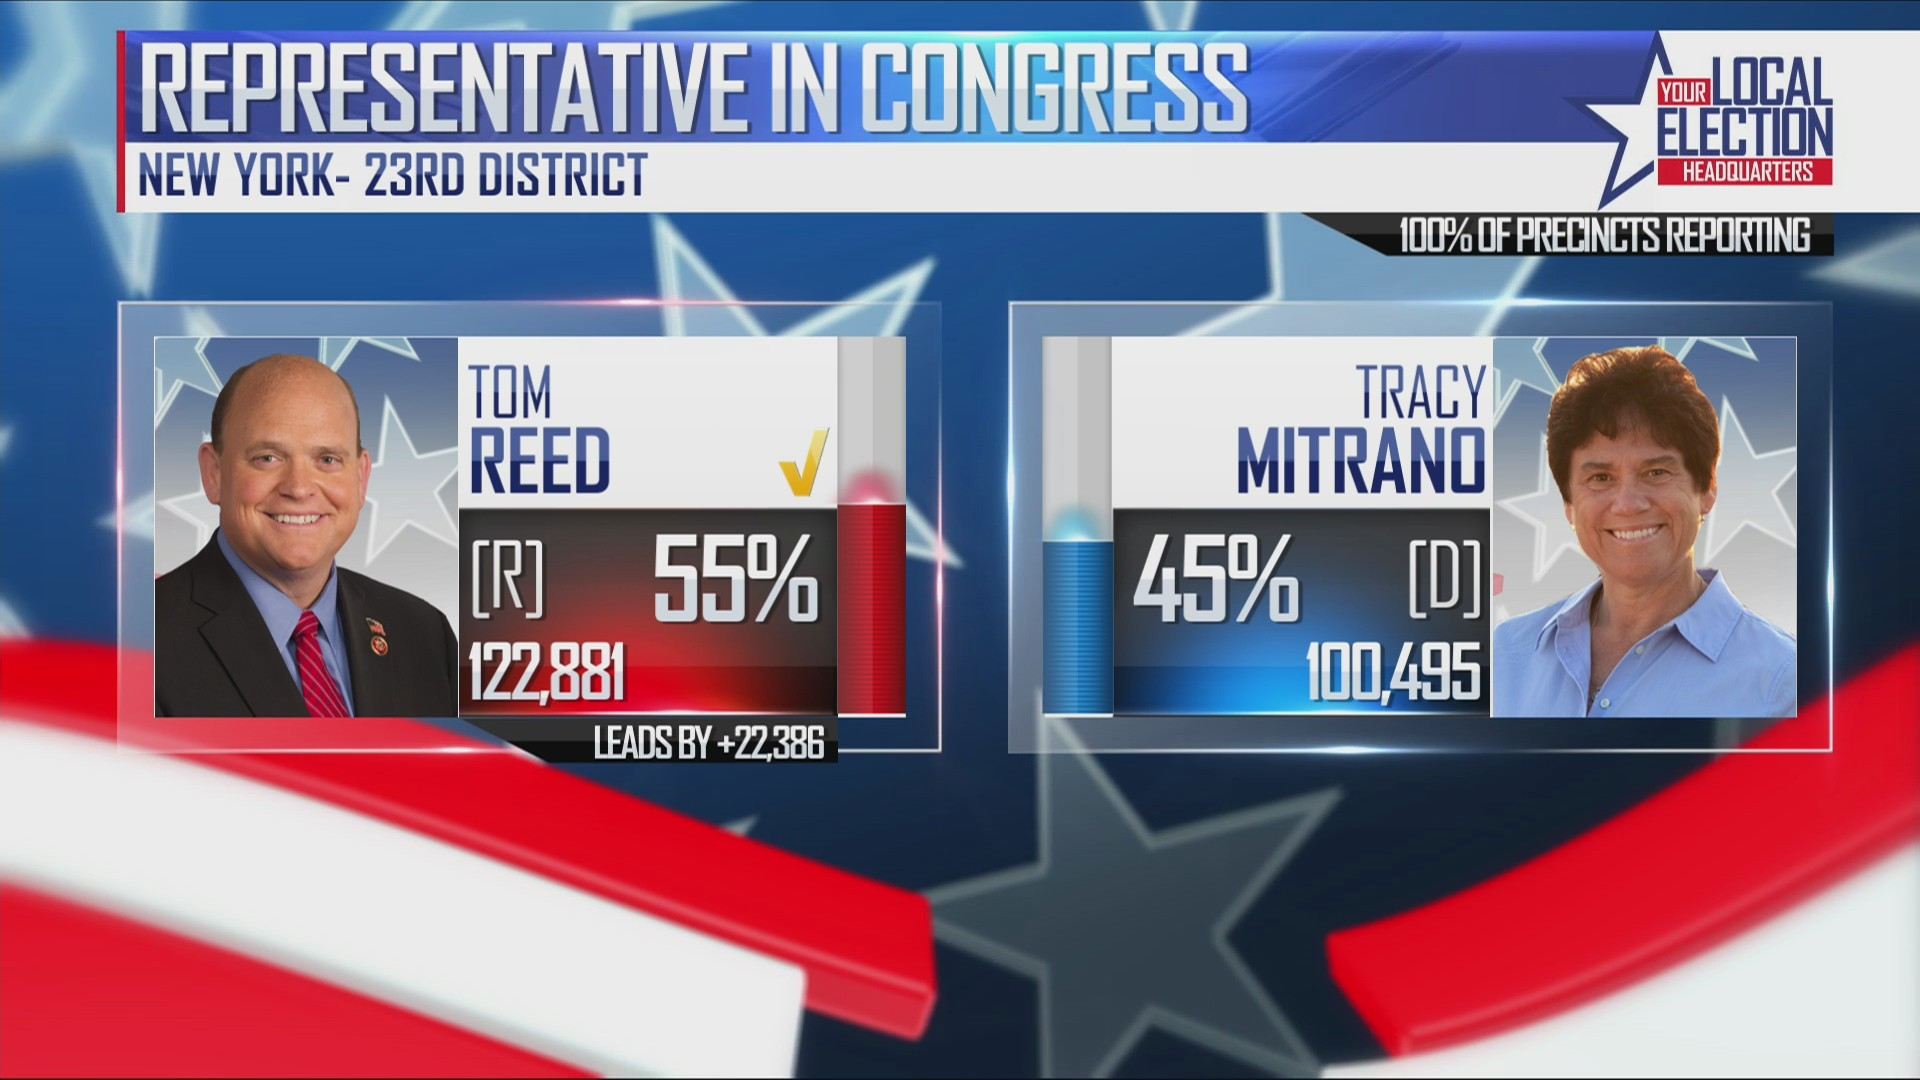 Congressman Reed elected to fifth term after facing off against Democrat Tracy Mitrano